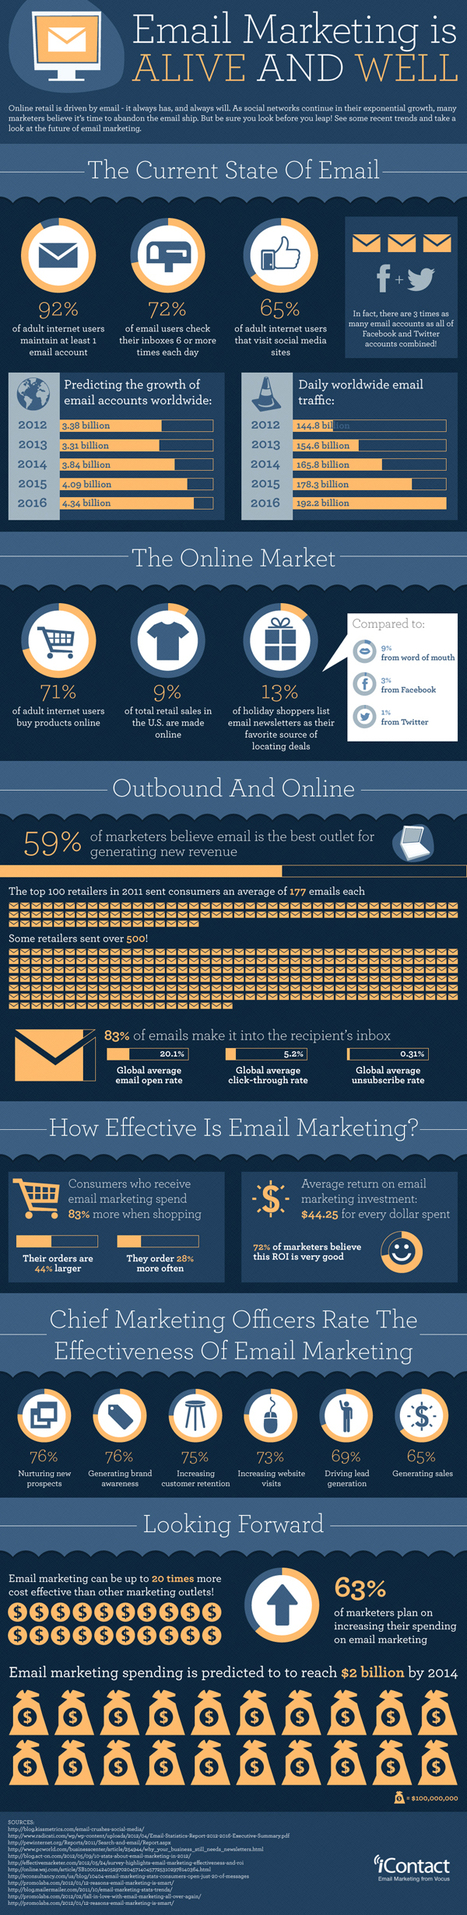 Why You Shouldn't Give Up on Email Marketing | Being Your Brand | Scoop.it